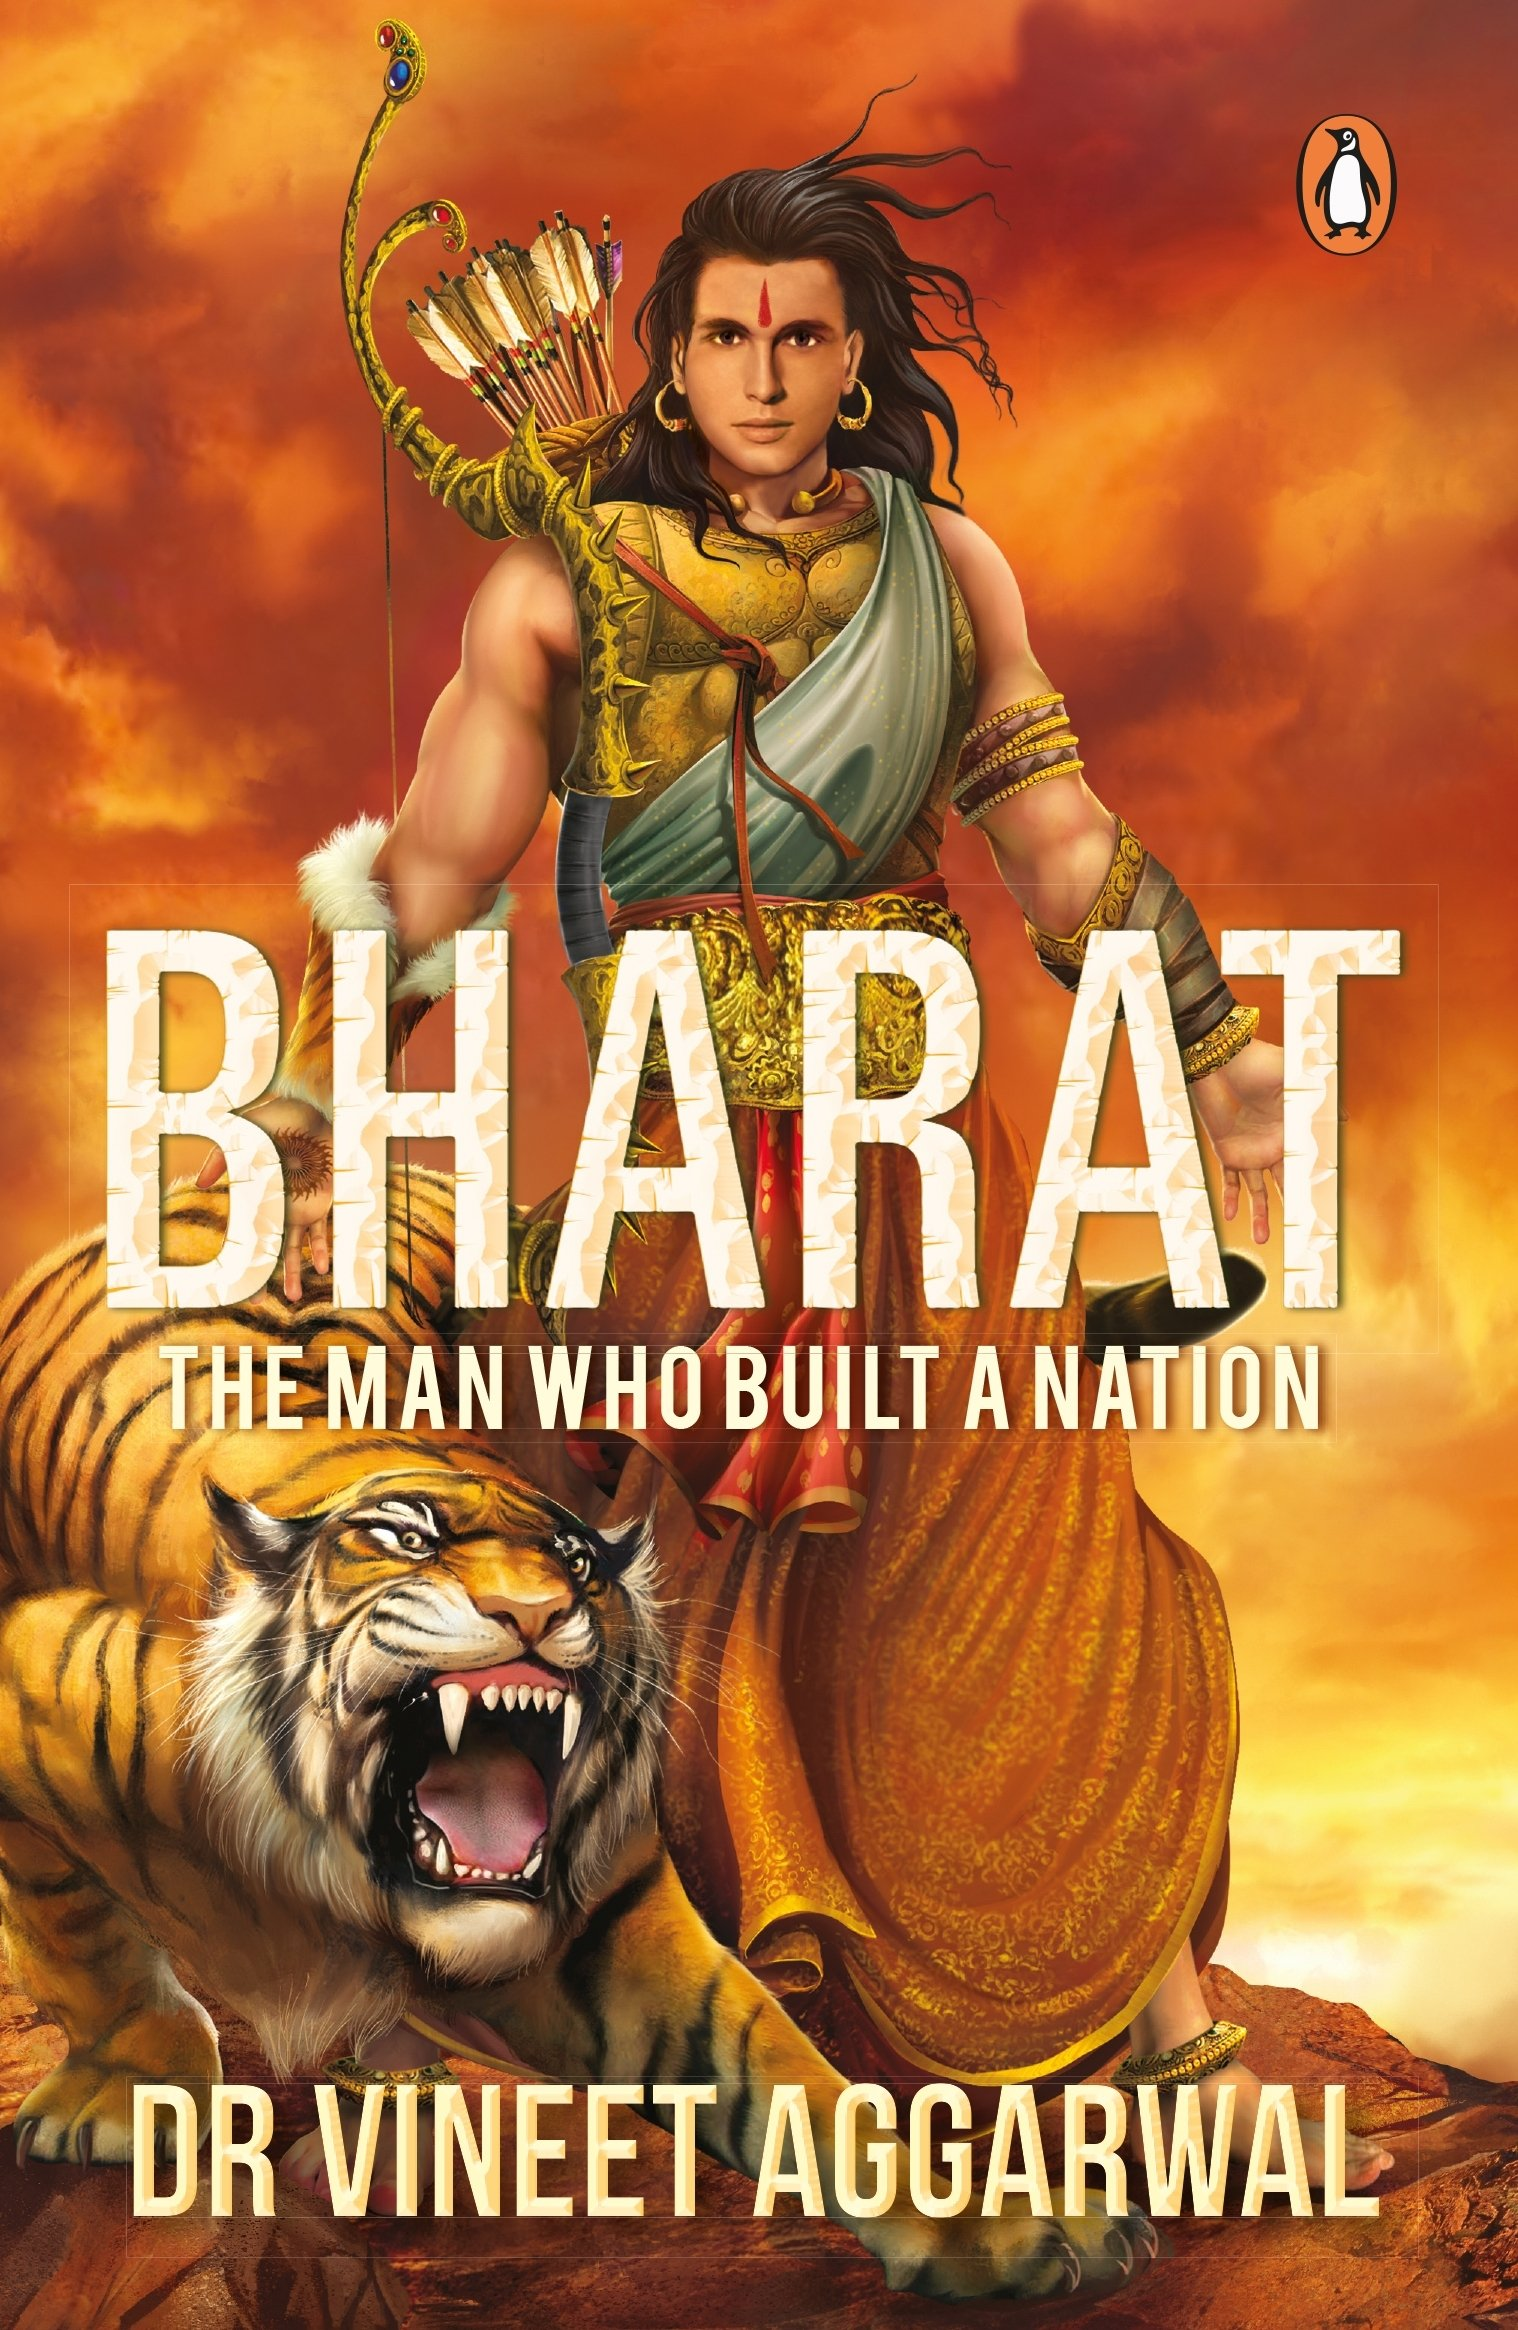 Image result for bharat: the man who built a nation book